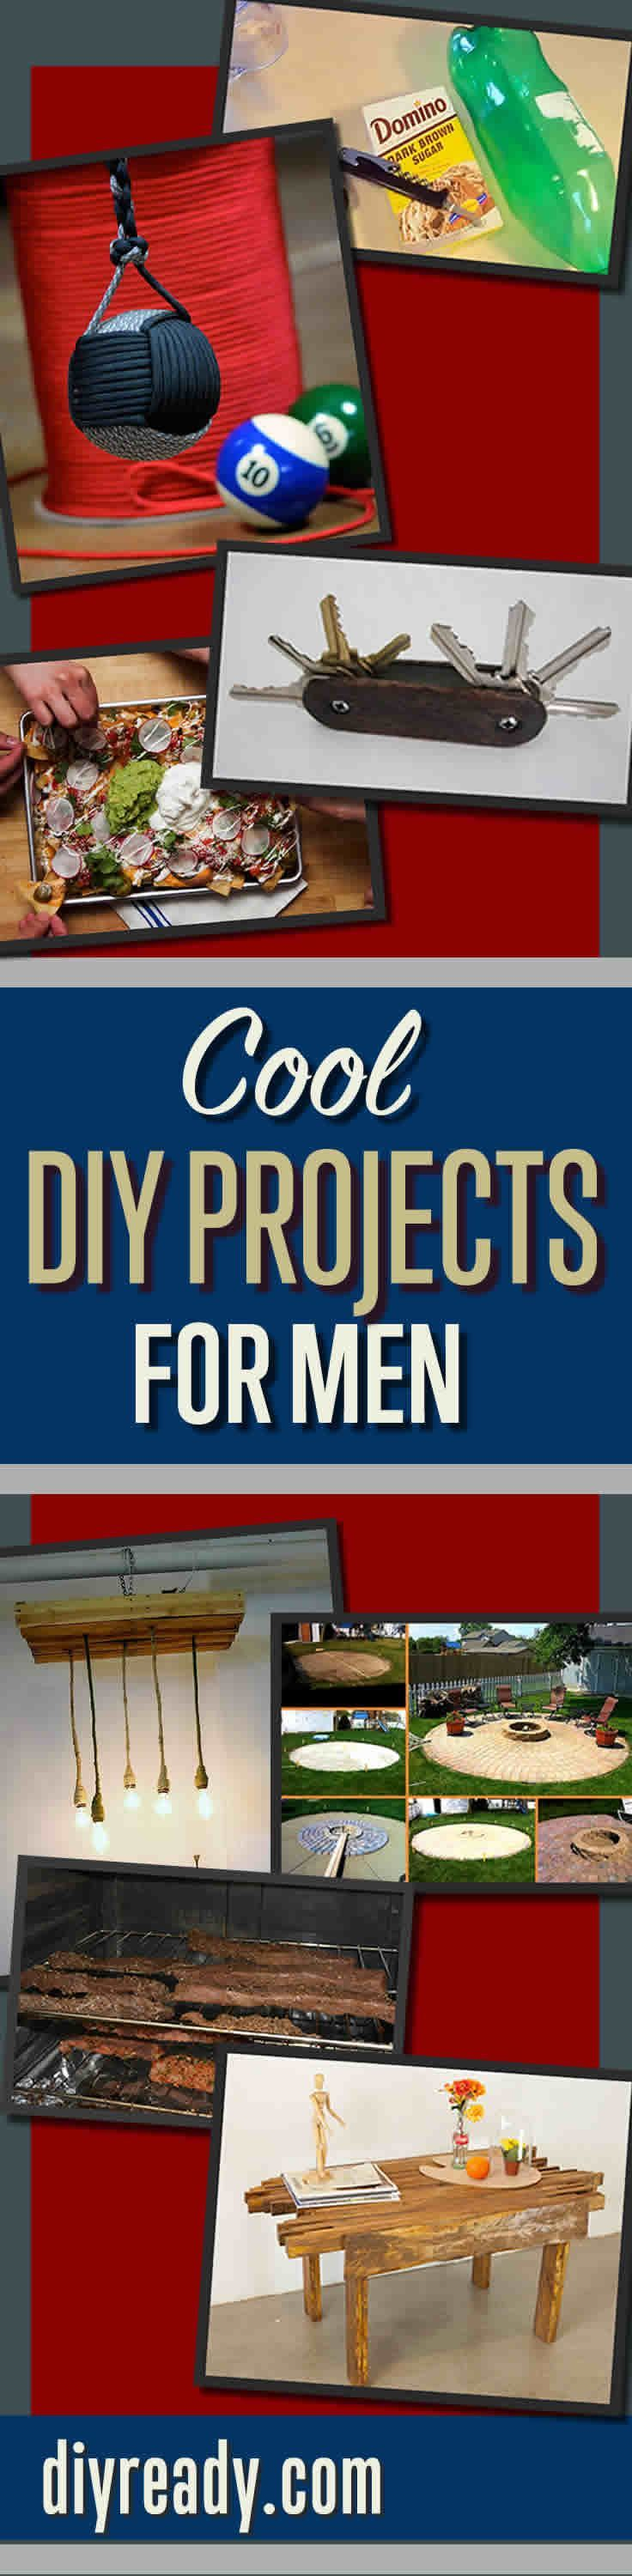 Cool diy projects for men and do it yourself tutorials ideas guys cool diy projects for men and do it yourself tutorials ideas guys love diy ready solutioingenieria Image collections